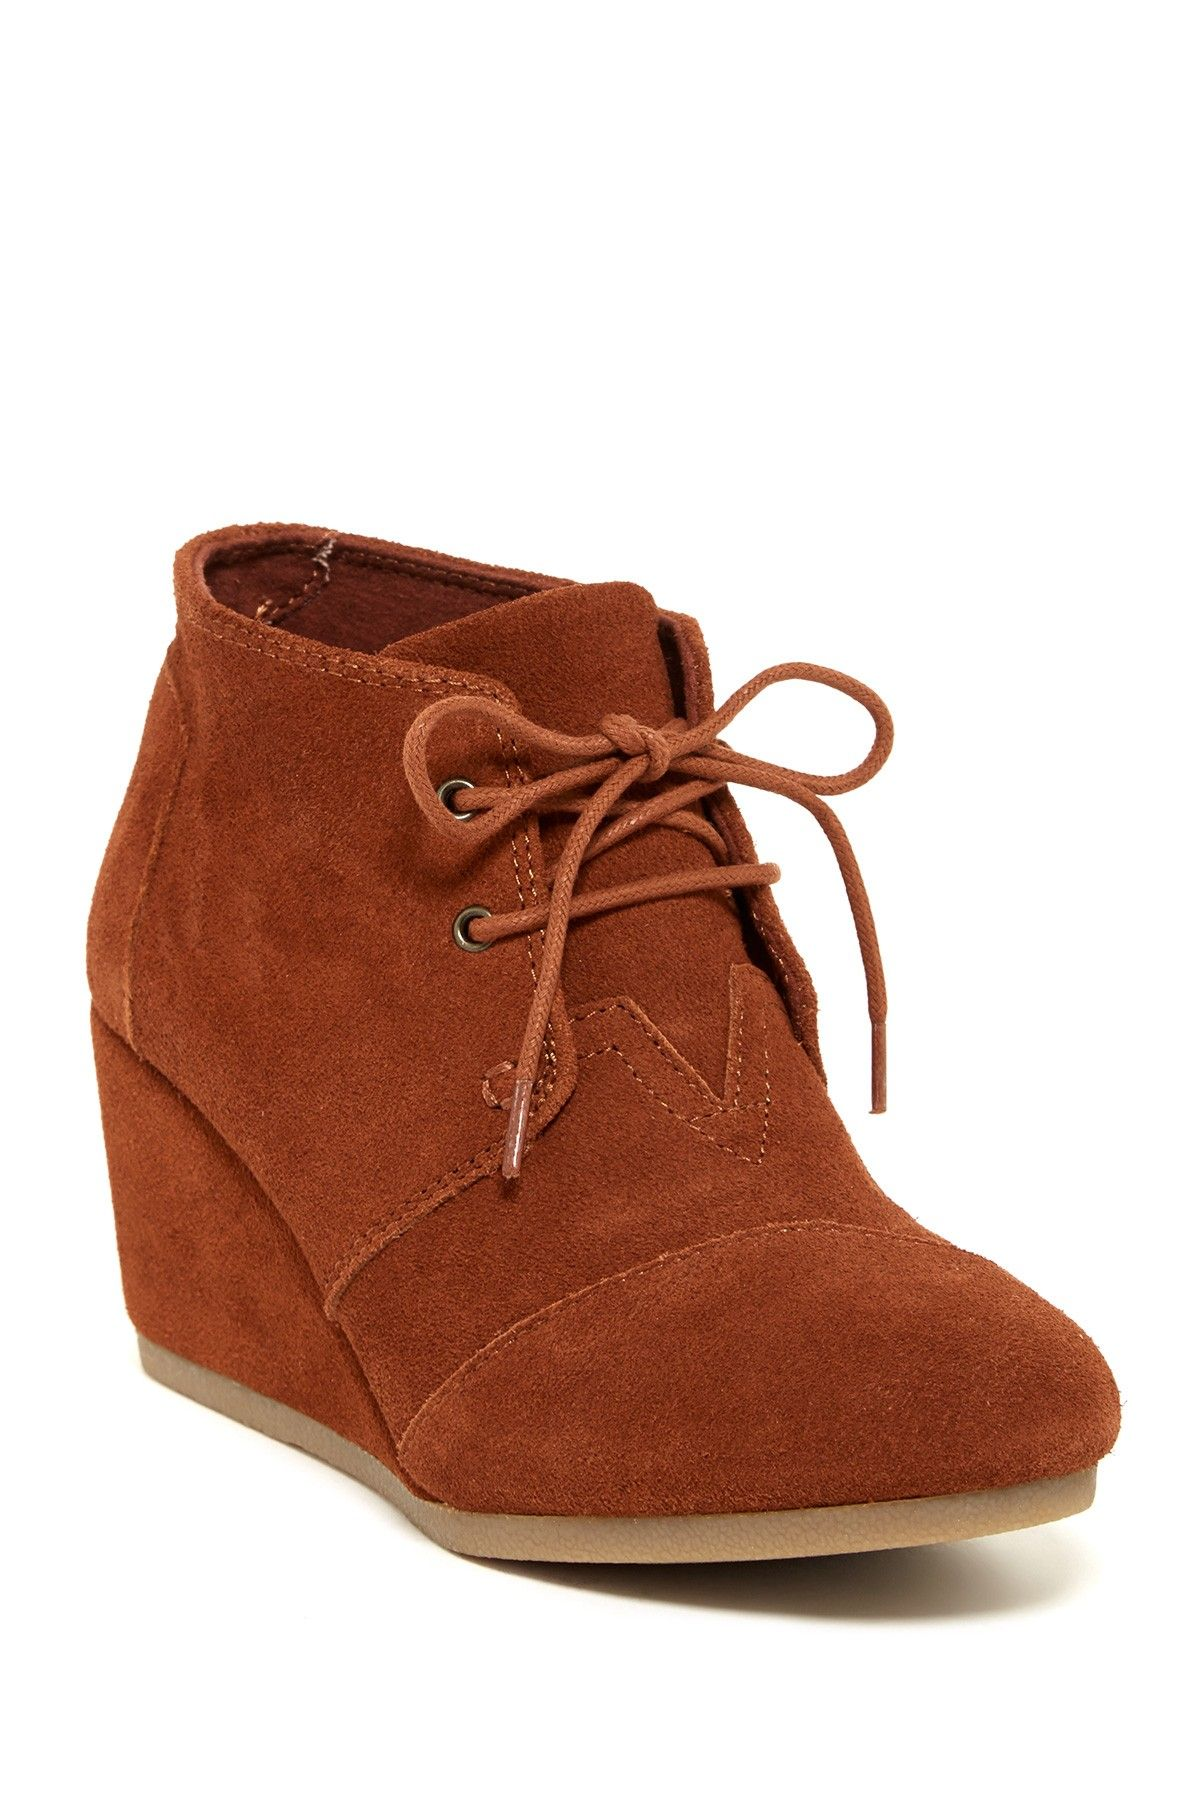 bc4f2777b7a Desert Chukka Wedge Bootie by TOMS on  nordstrom rack Wedge Bootie